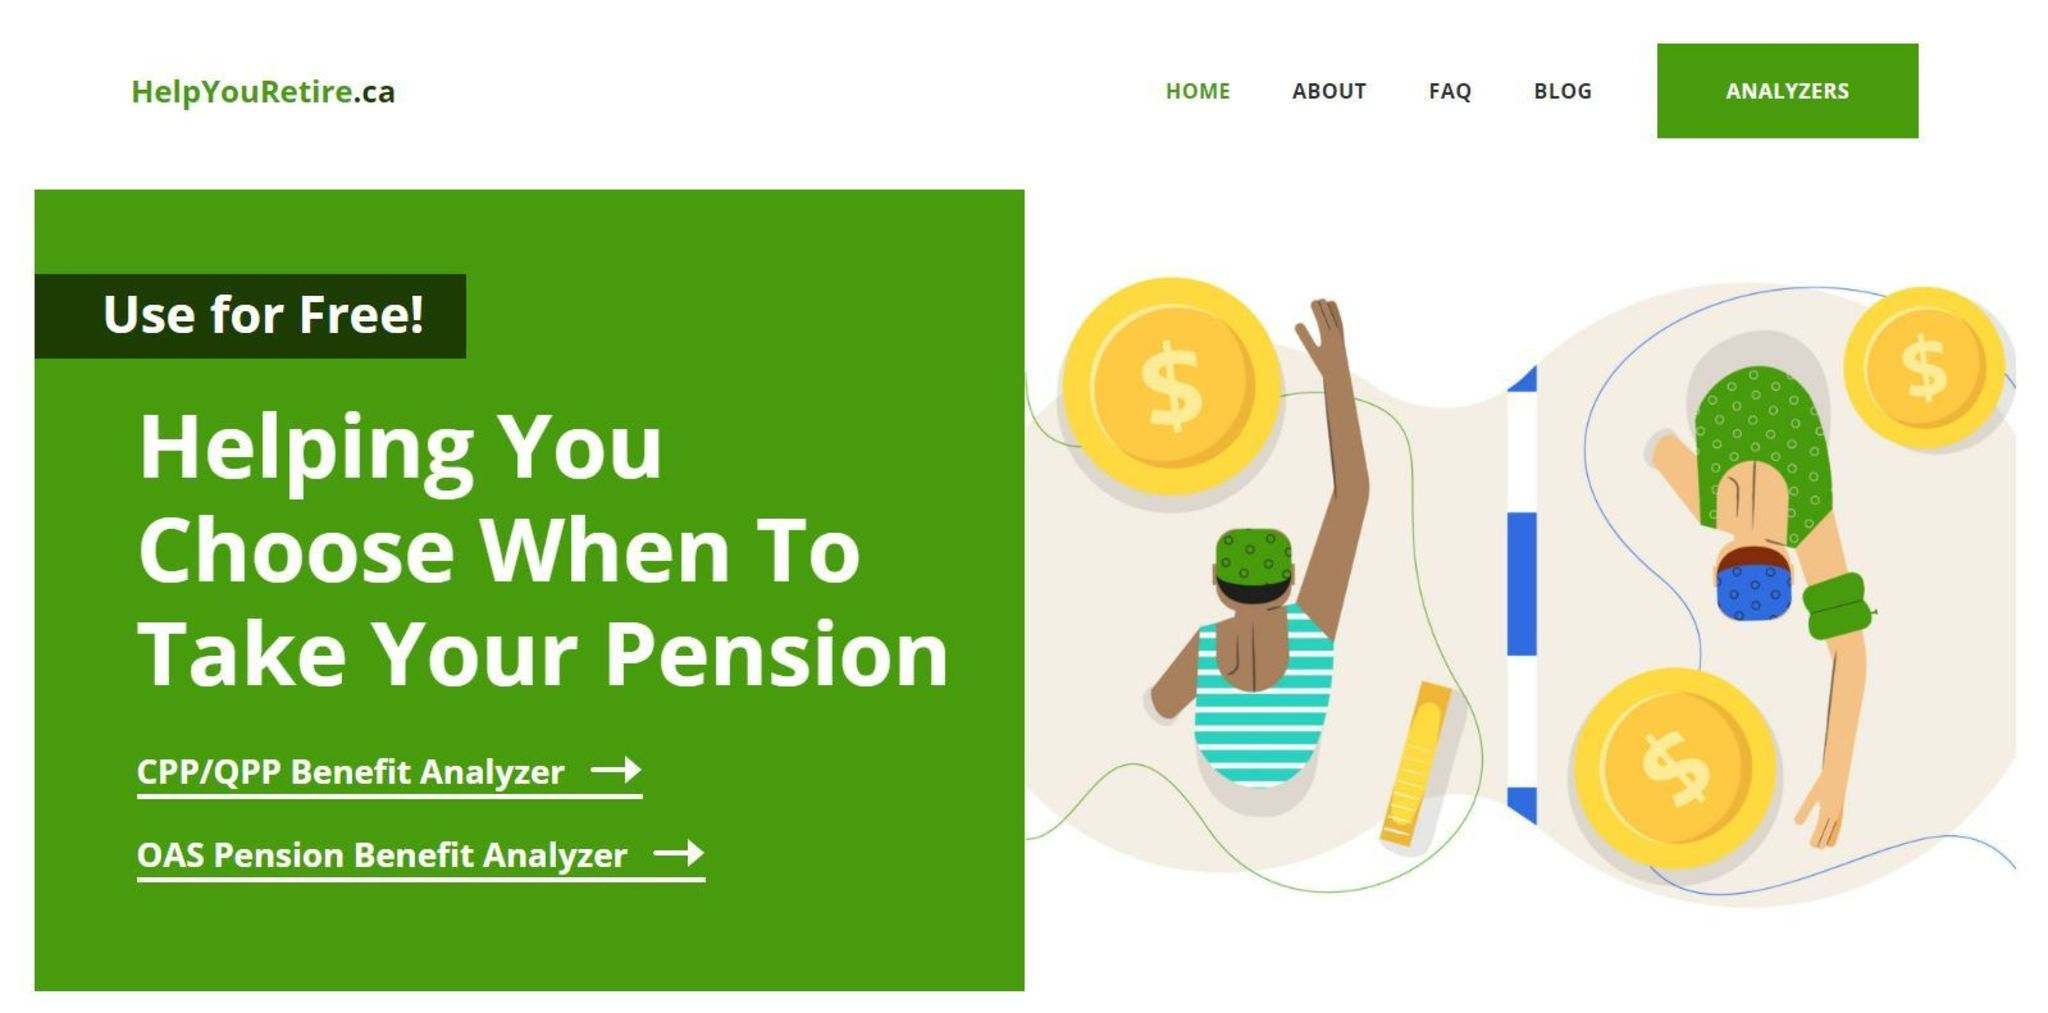 The site will give users a basic dollar figure that could be gained in delaying receiving benefits for a year for each year up to age 70 at no cost.